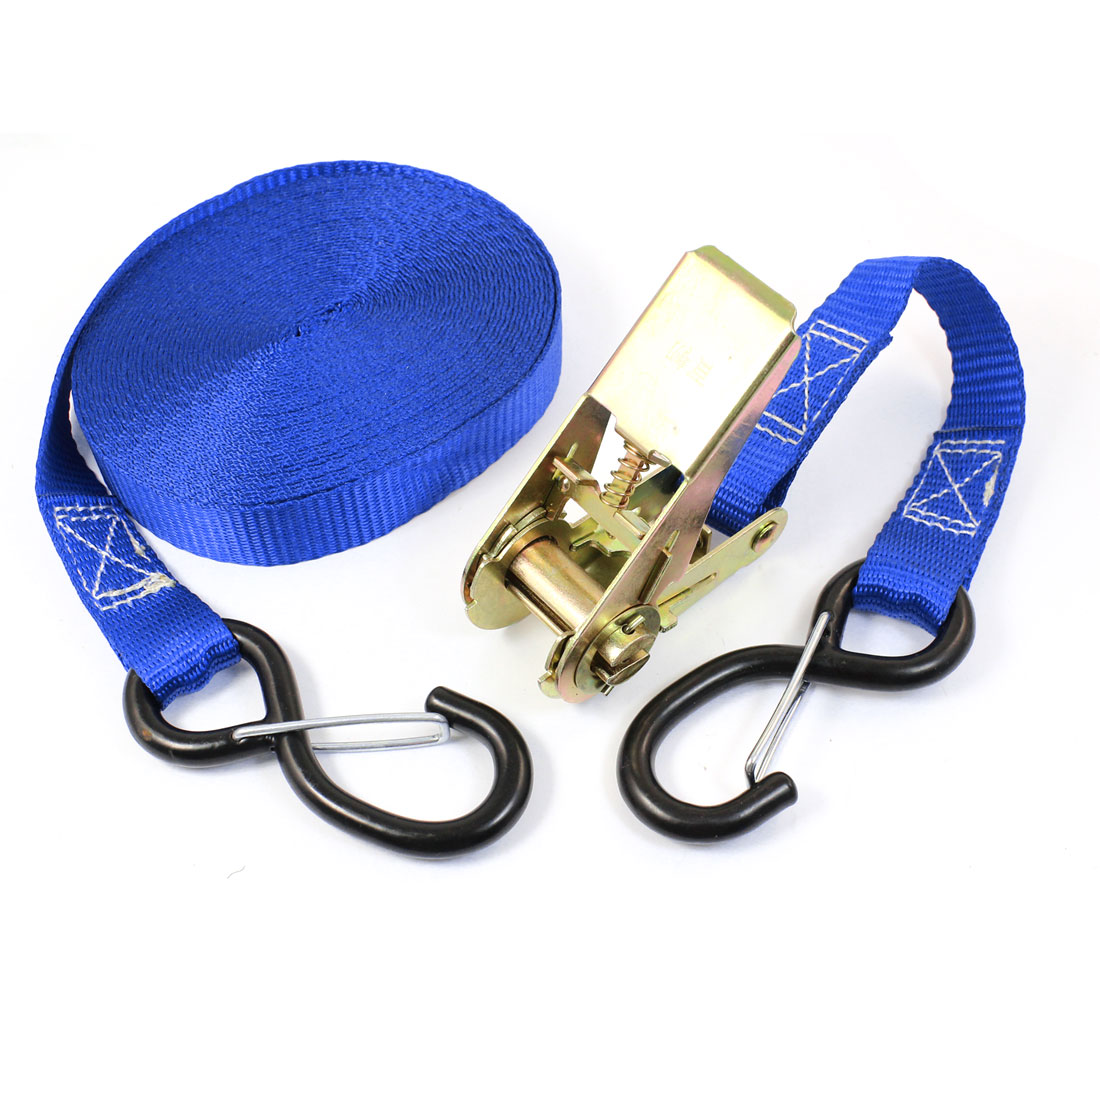 S Shape Metal Hook Cargo Binding Band Ratchet Tie Down Strap 10M 33ft Blue